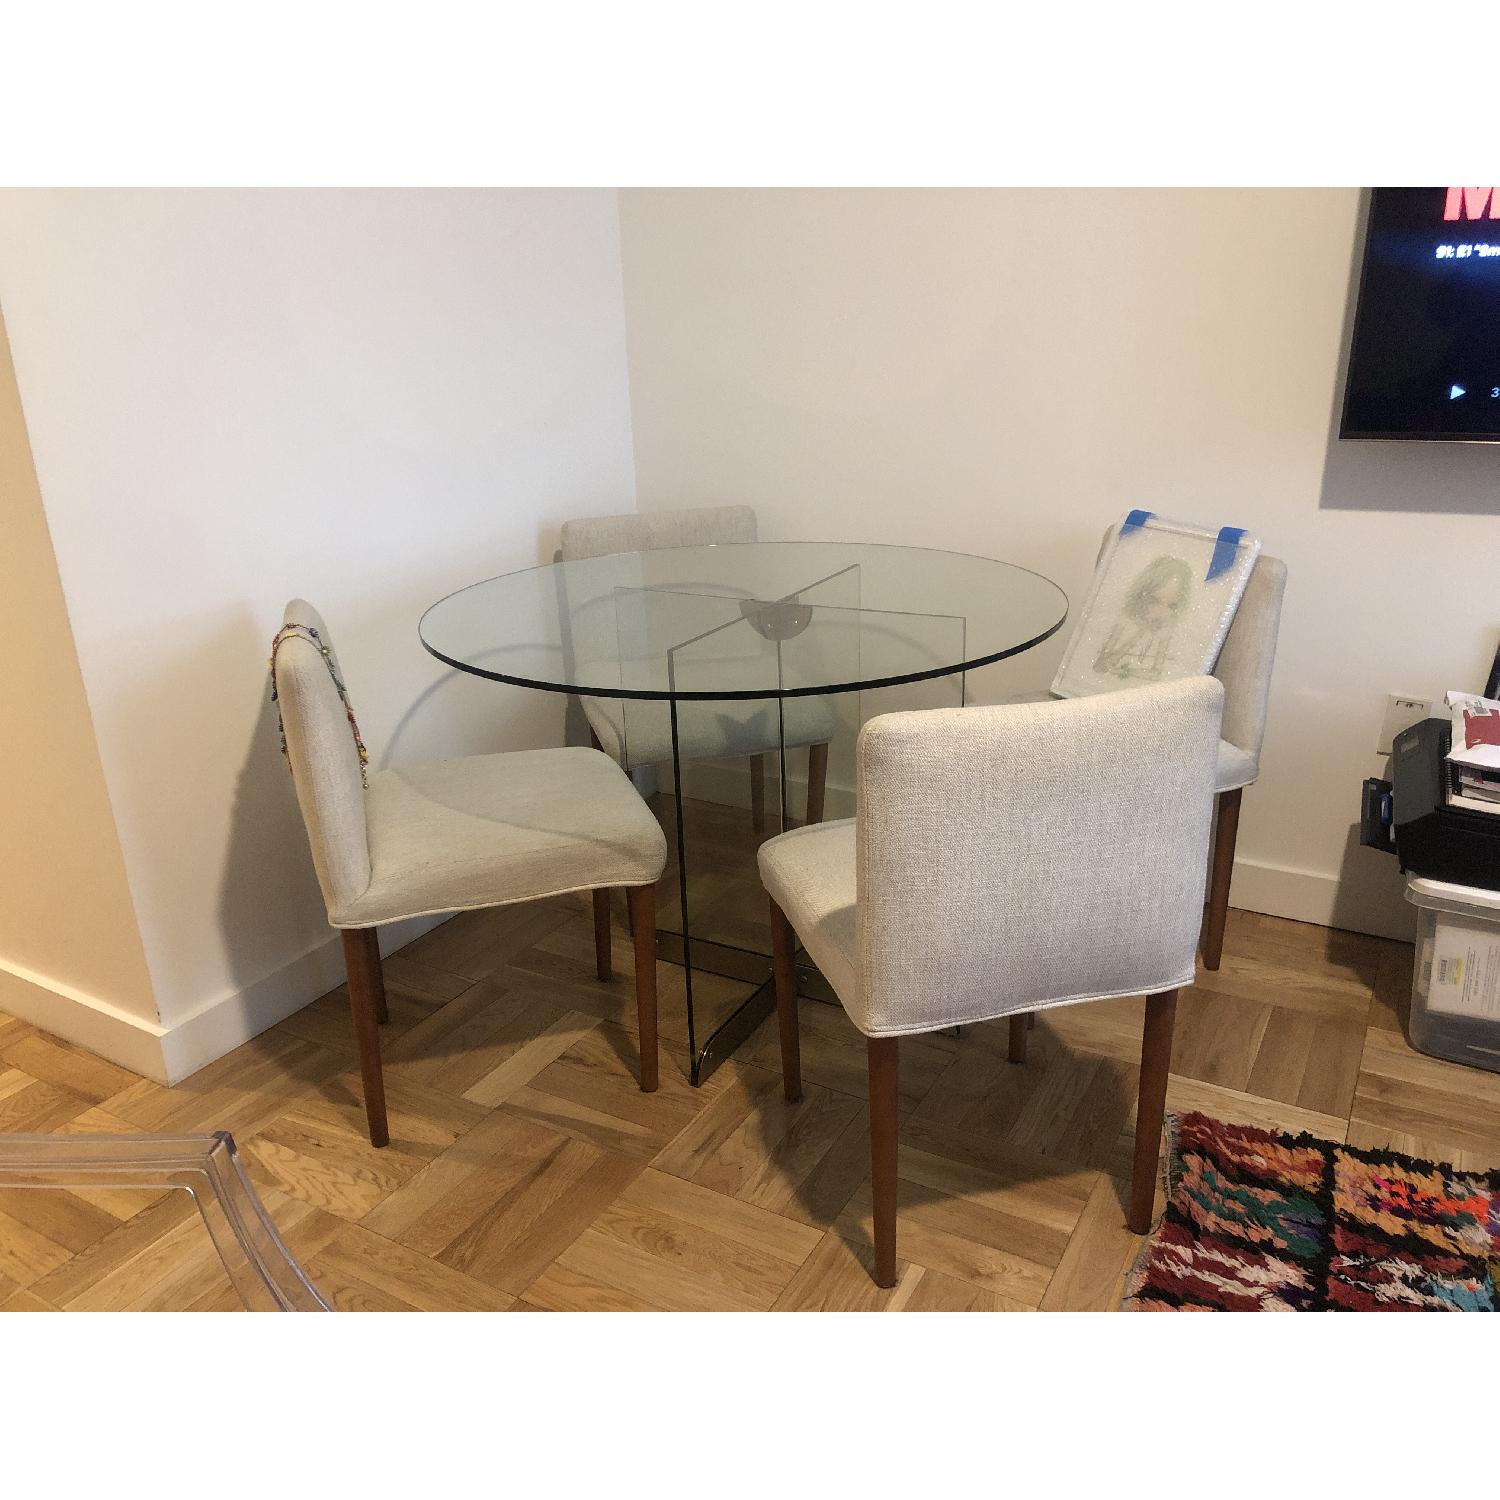 West Elm Glass Dining Table w/ 4 Wood & Fabric Chairs - image-2